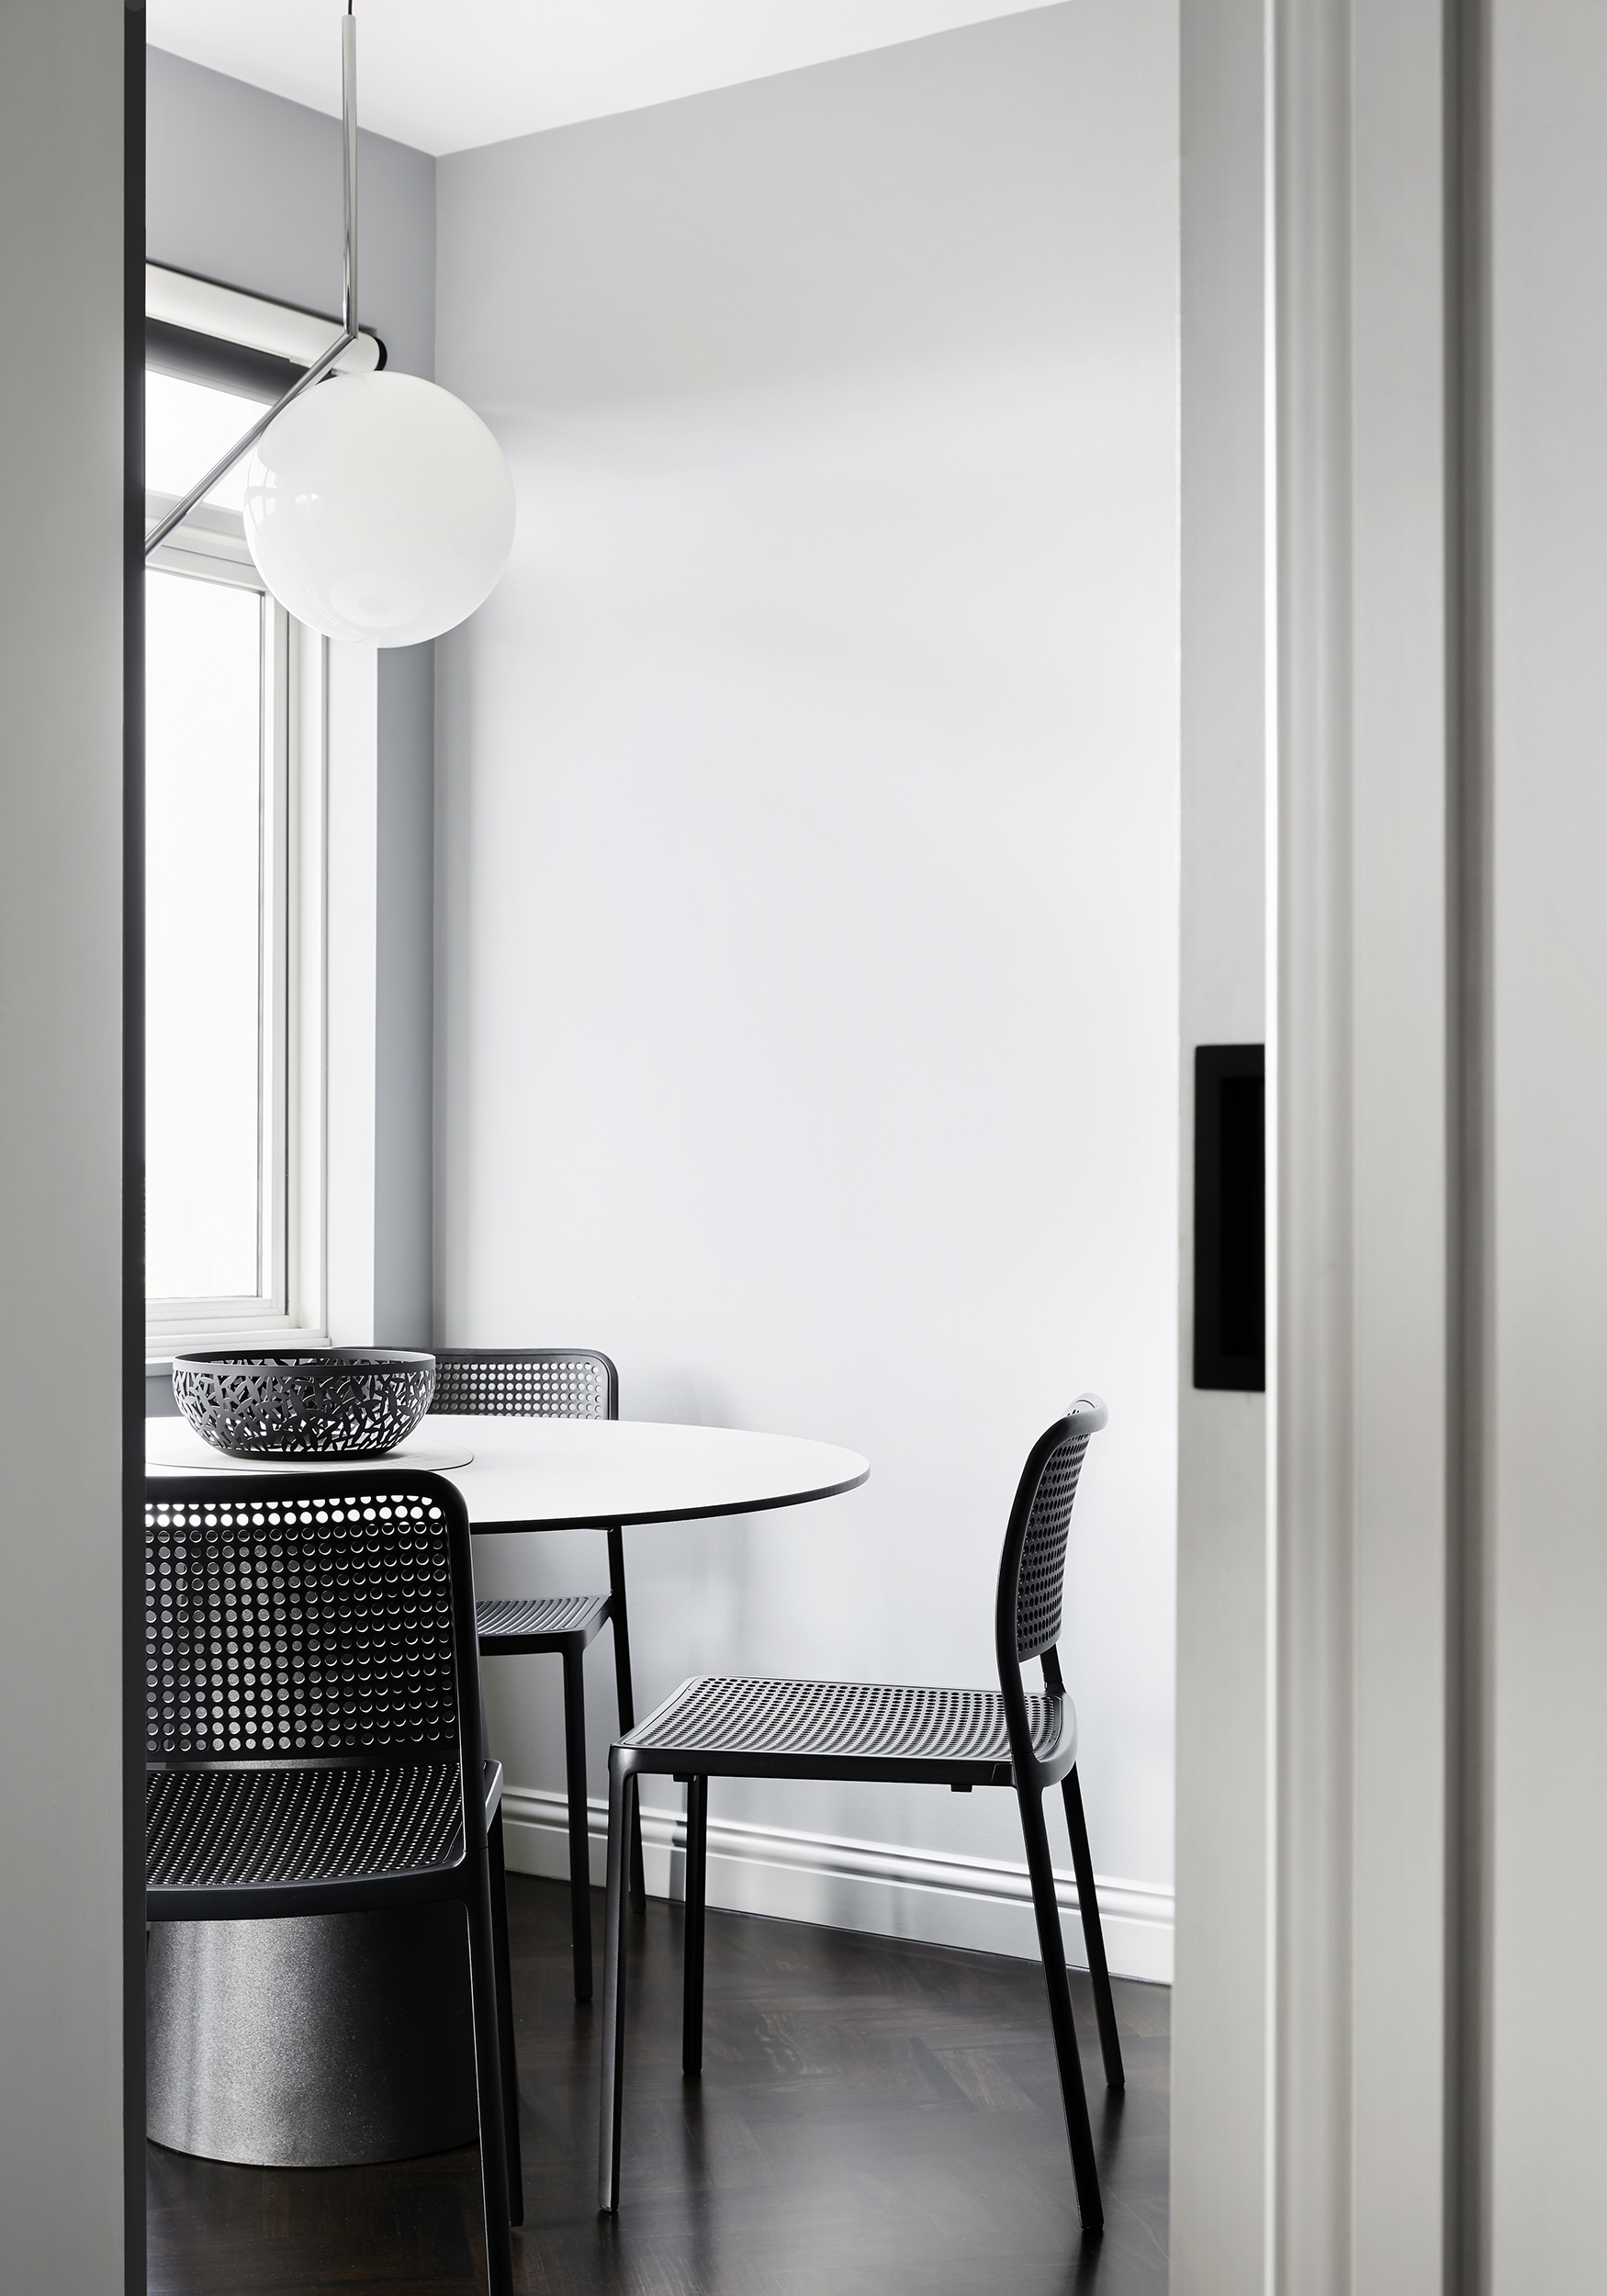 Winter Architecture_Apartment 1405_Photography by Tess Kelly_02.jpg